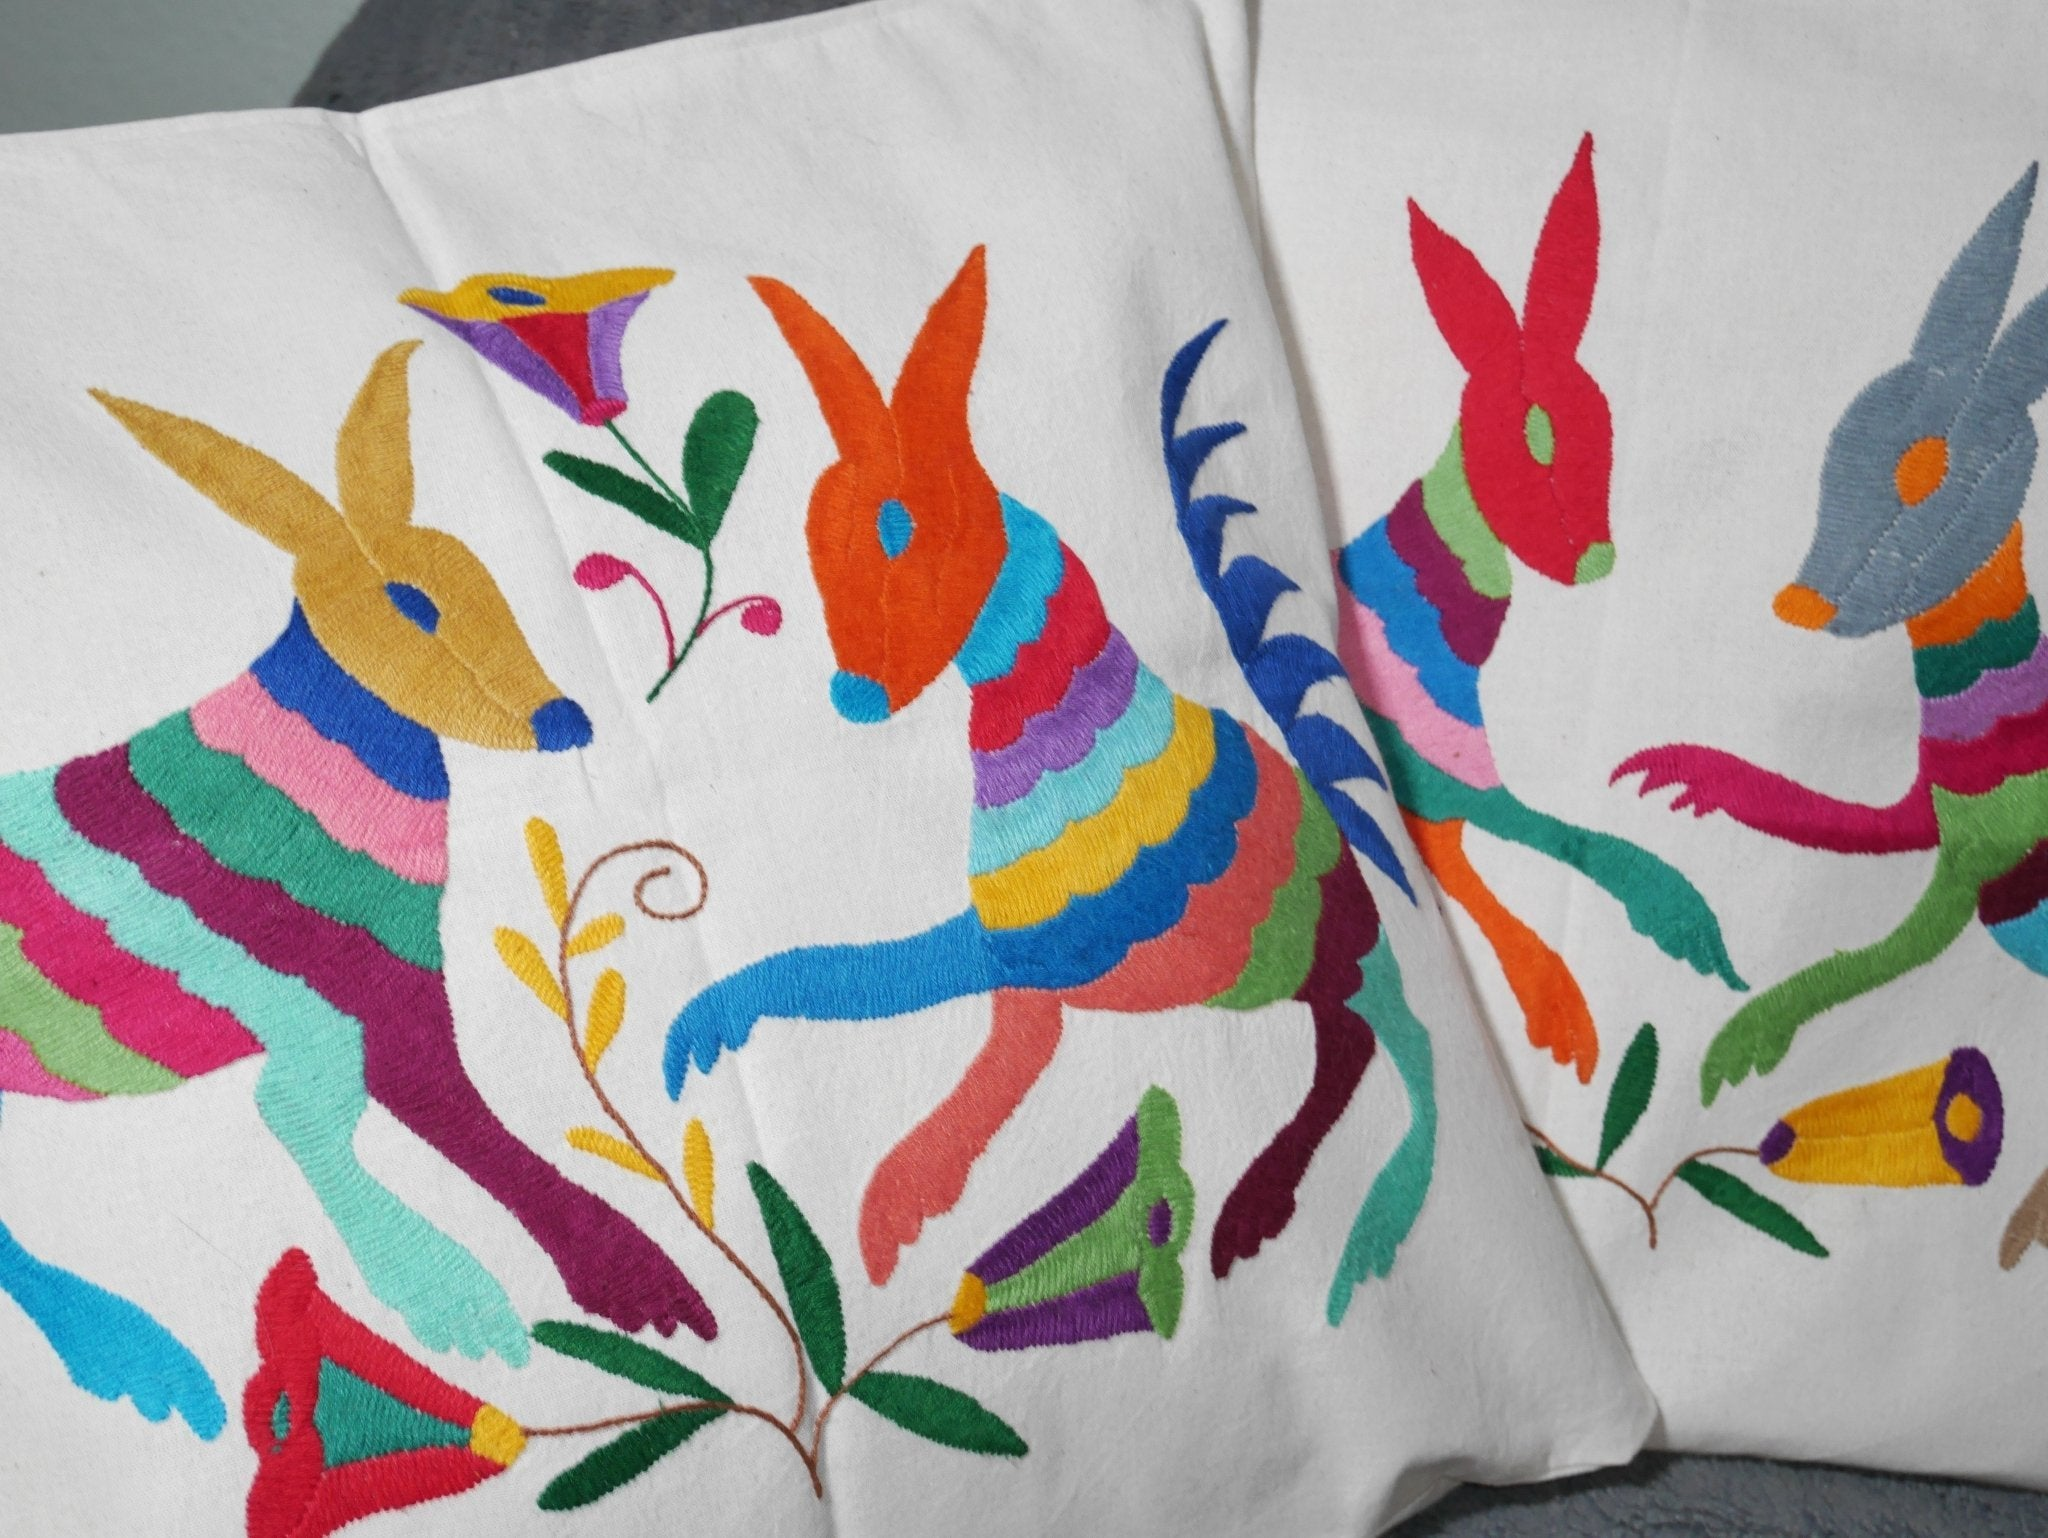 Housse Otomi - Mammifères multicolores - Hecho a Mano